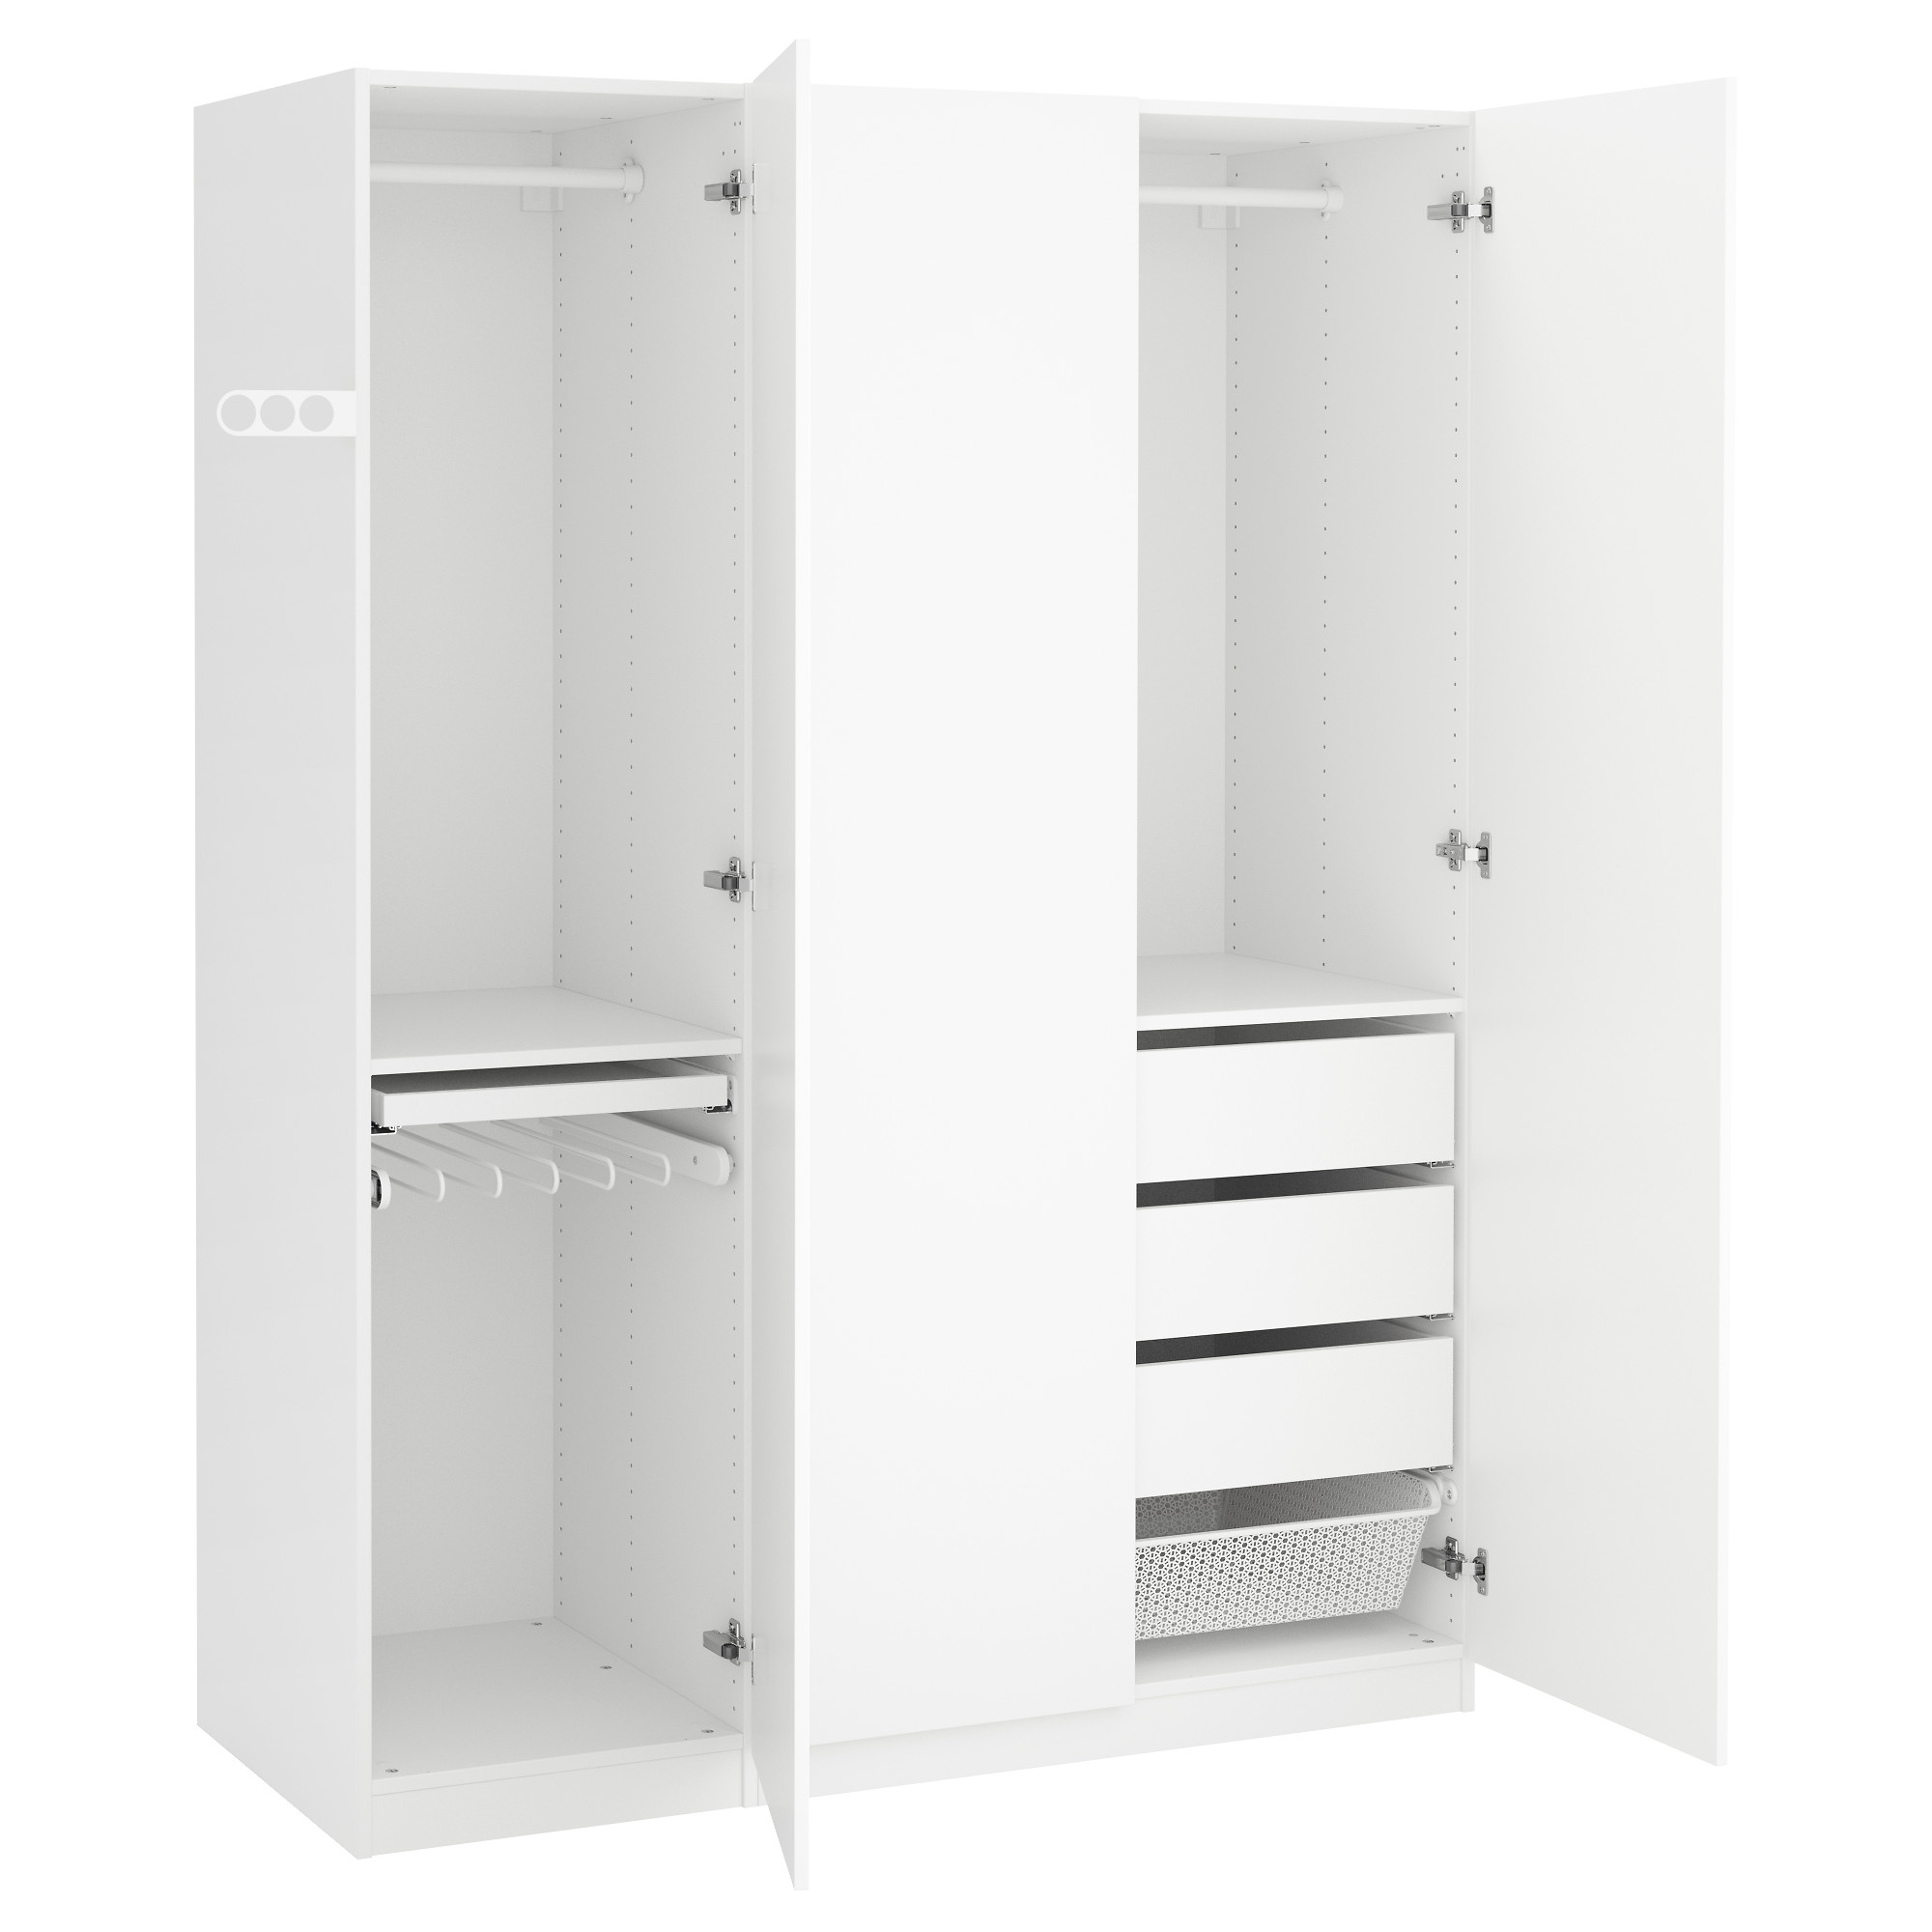 Single Door Wardrobes Wooden Wardrobe Ikea White Designs Elegant Intended For Favorite Black Single Door Wardrobes (View 15 of 15)